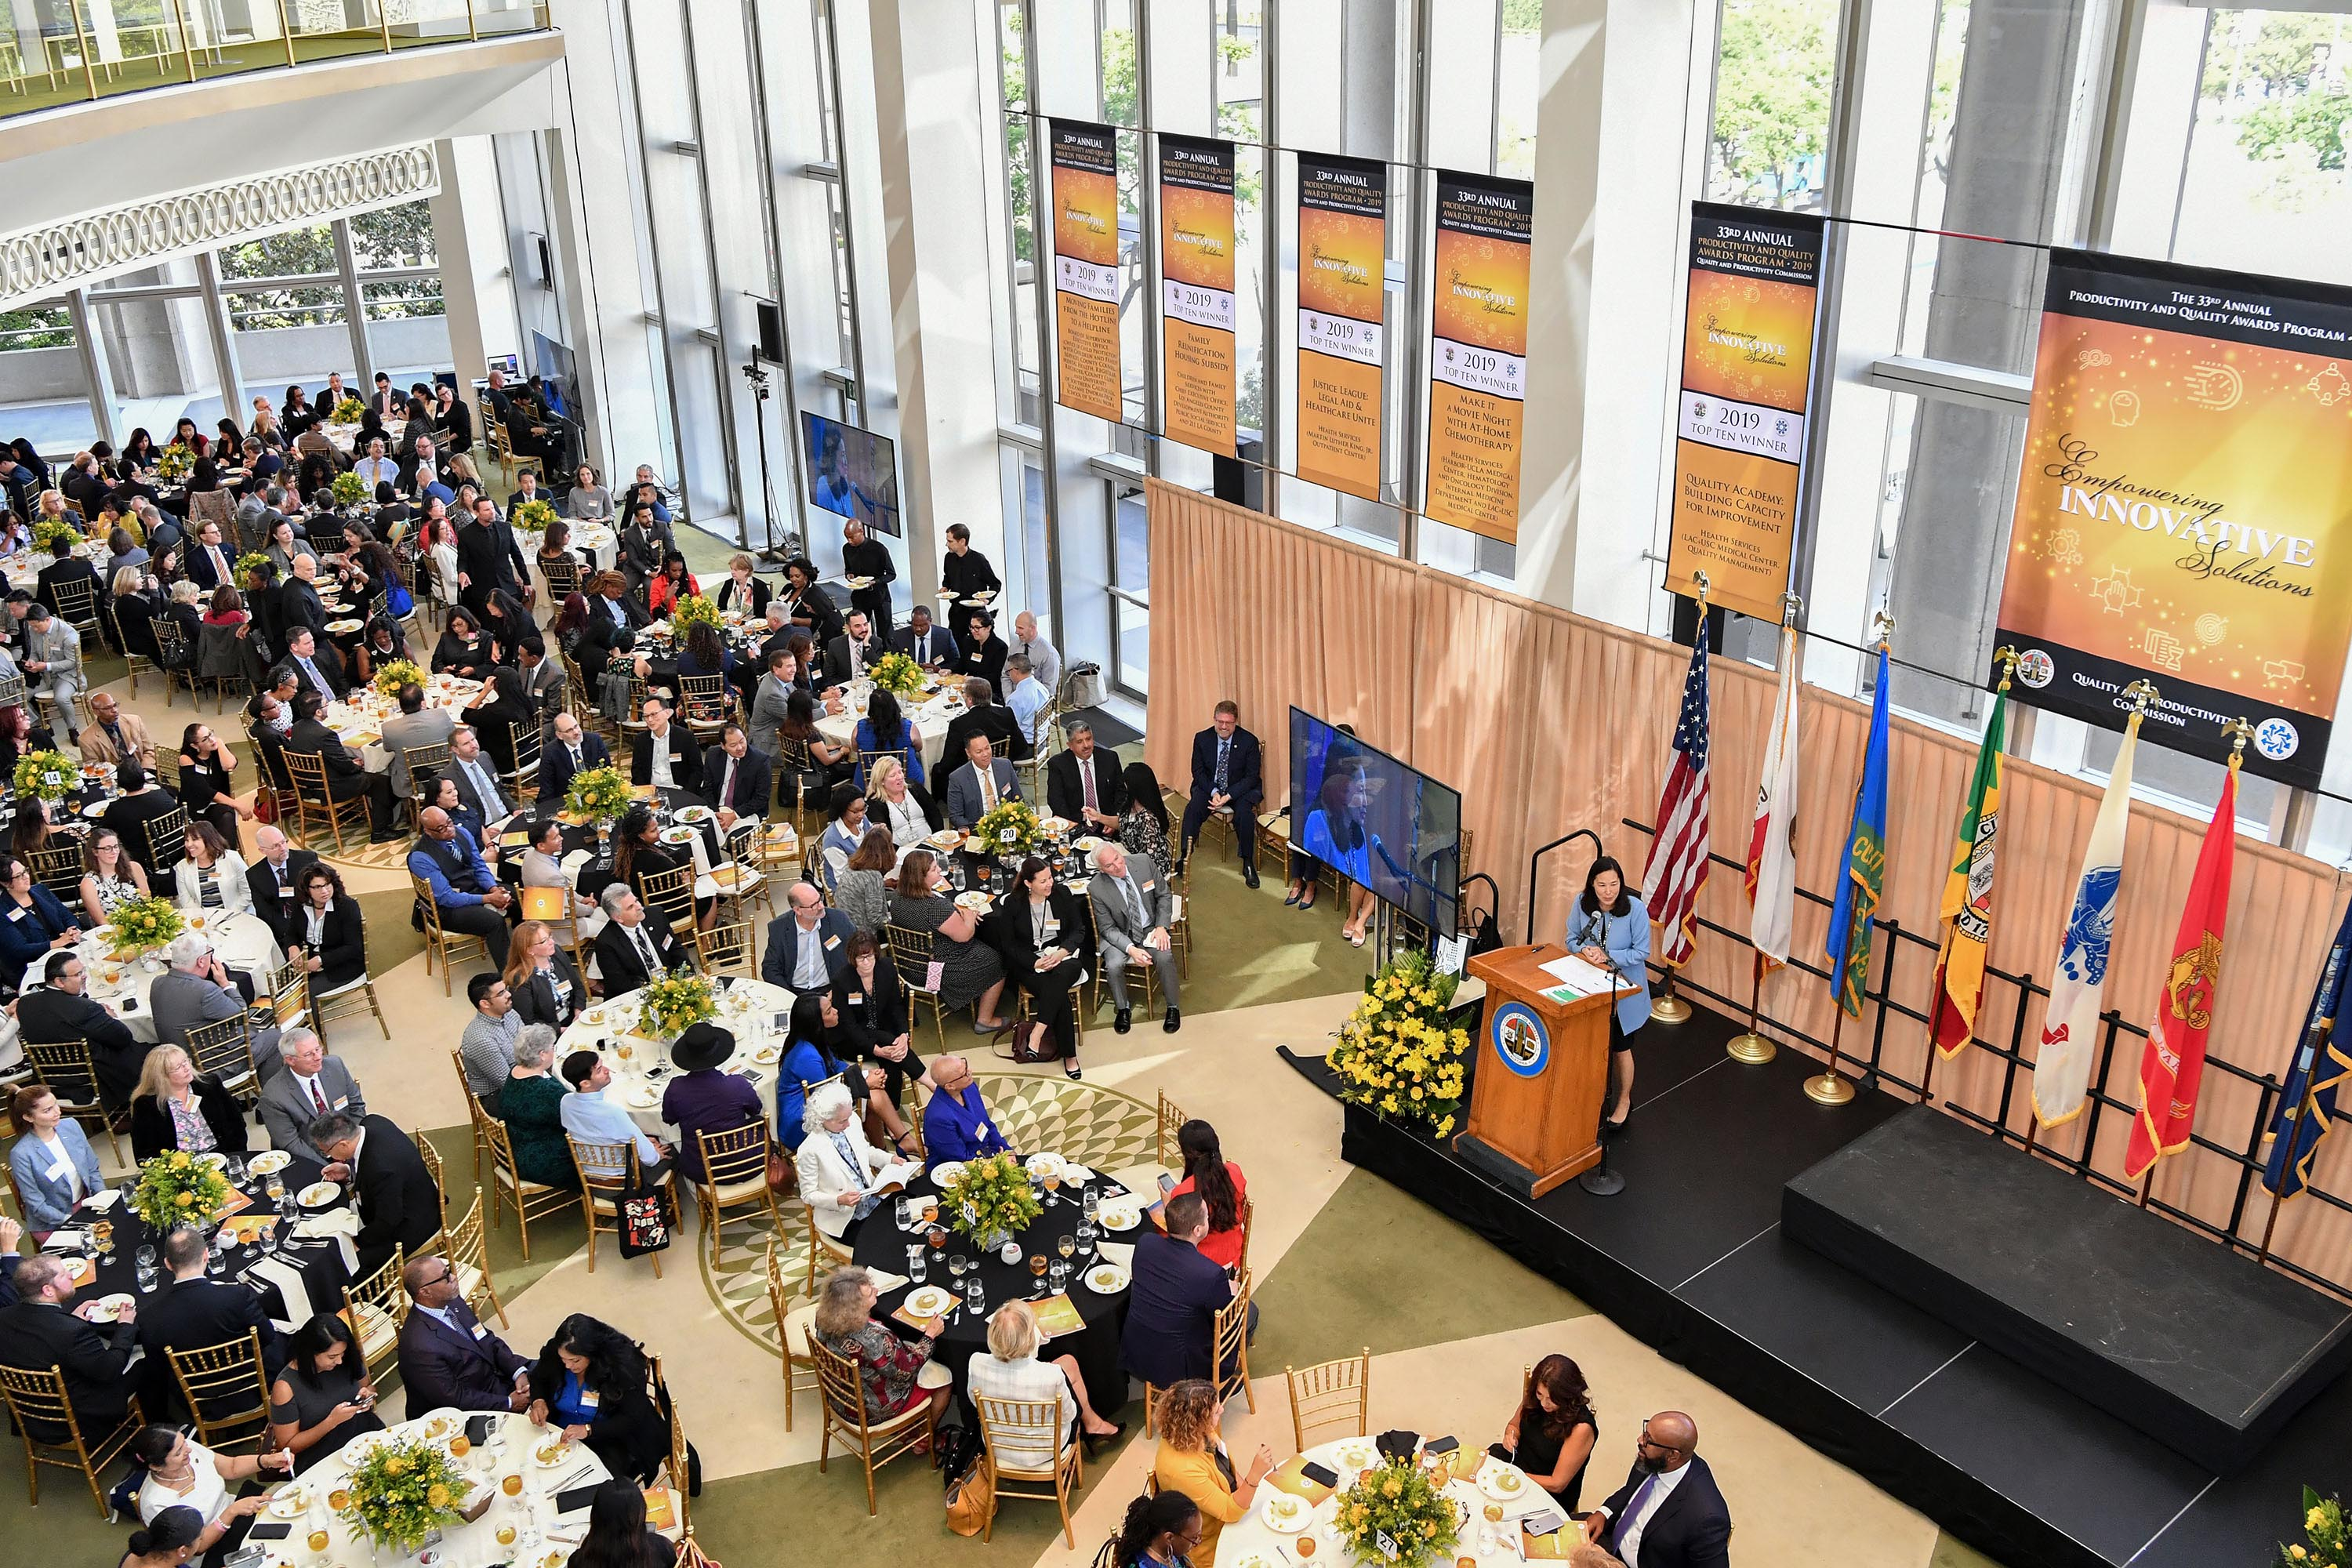 Quality and Productivity Commission<br> <b>Oct. 16, 2019 – 33rd Annual Productivity and Quality Awards</b><br> <i>Photo by Martin Zamora / Board of Supervisors</i>